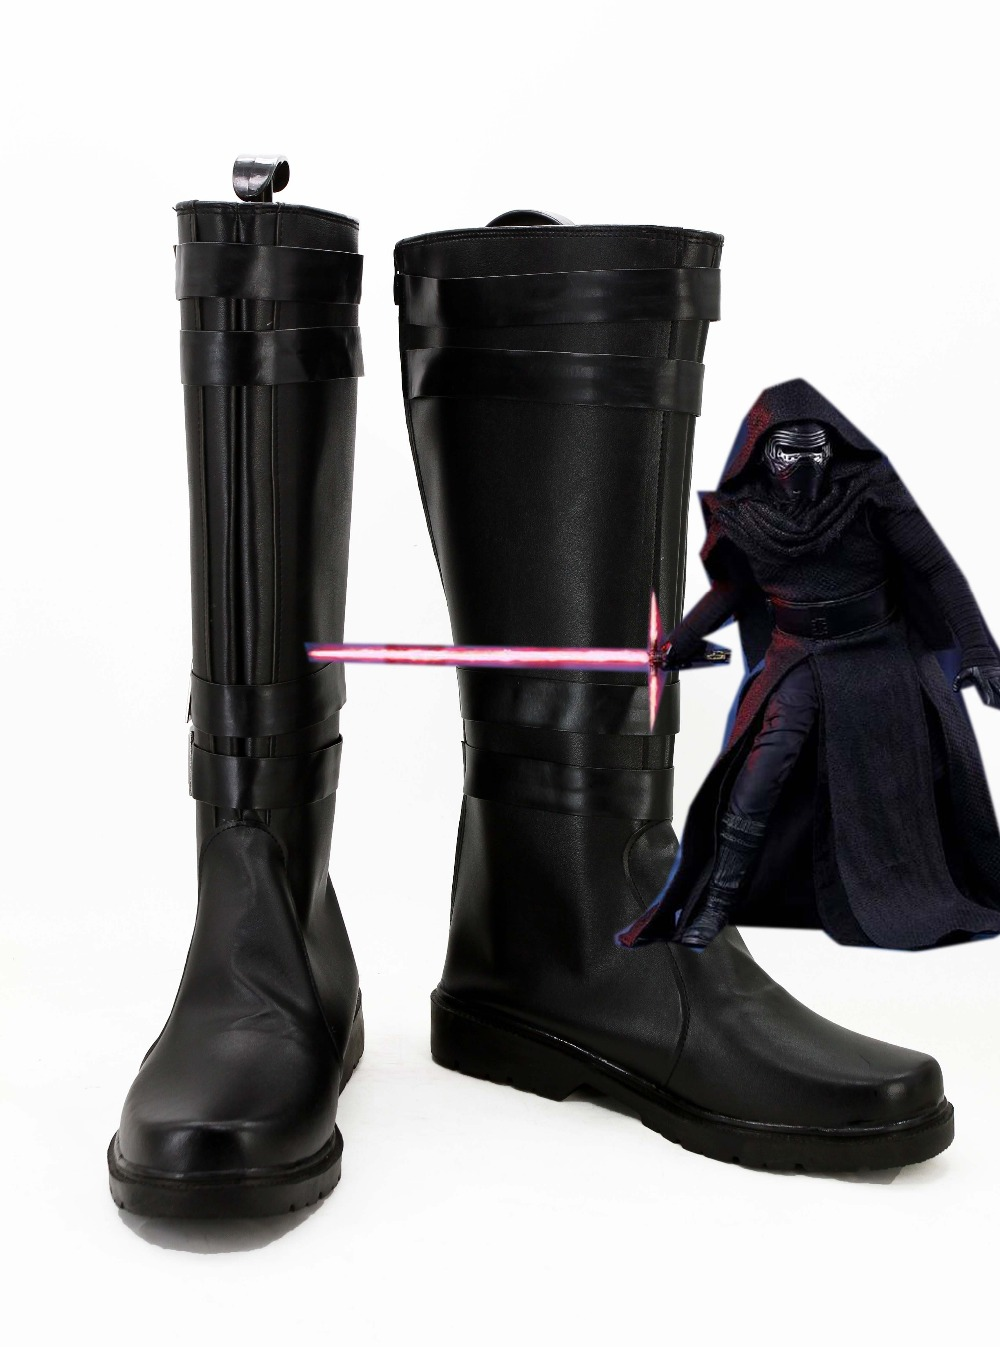 Star Wars 7: Force Awakens Kylo Ren Boots Sko Cosplay Kostume Custom Made